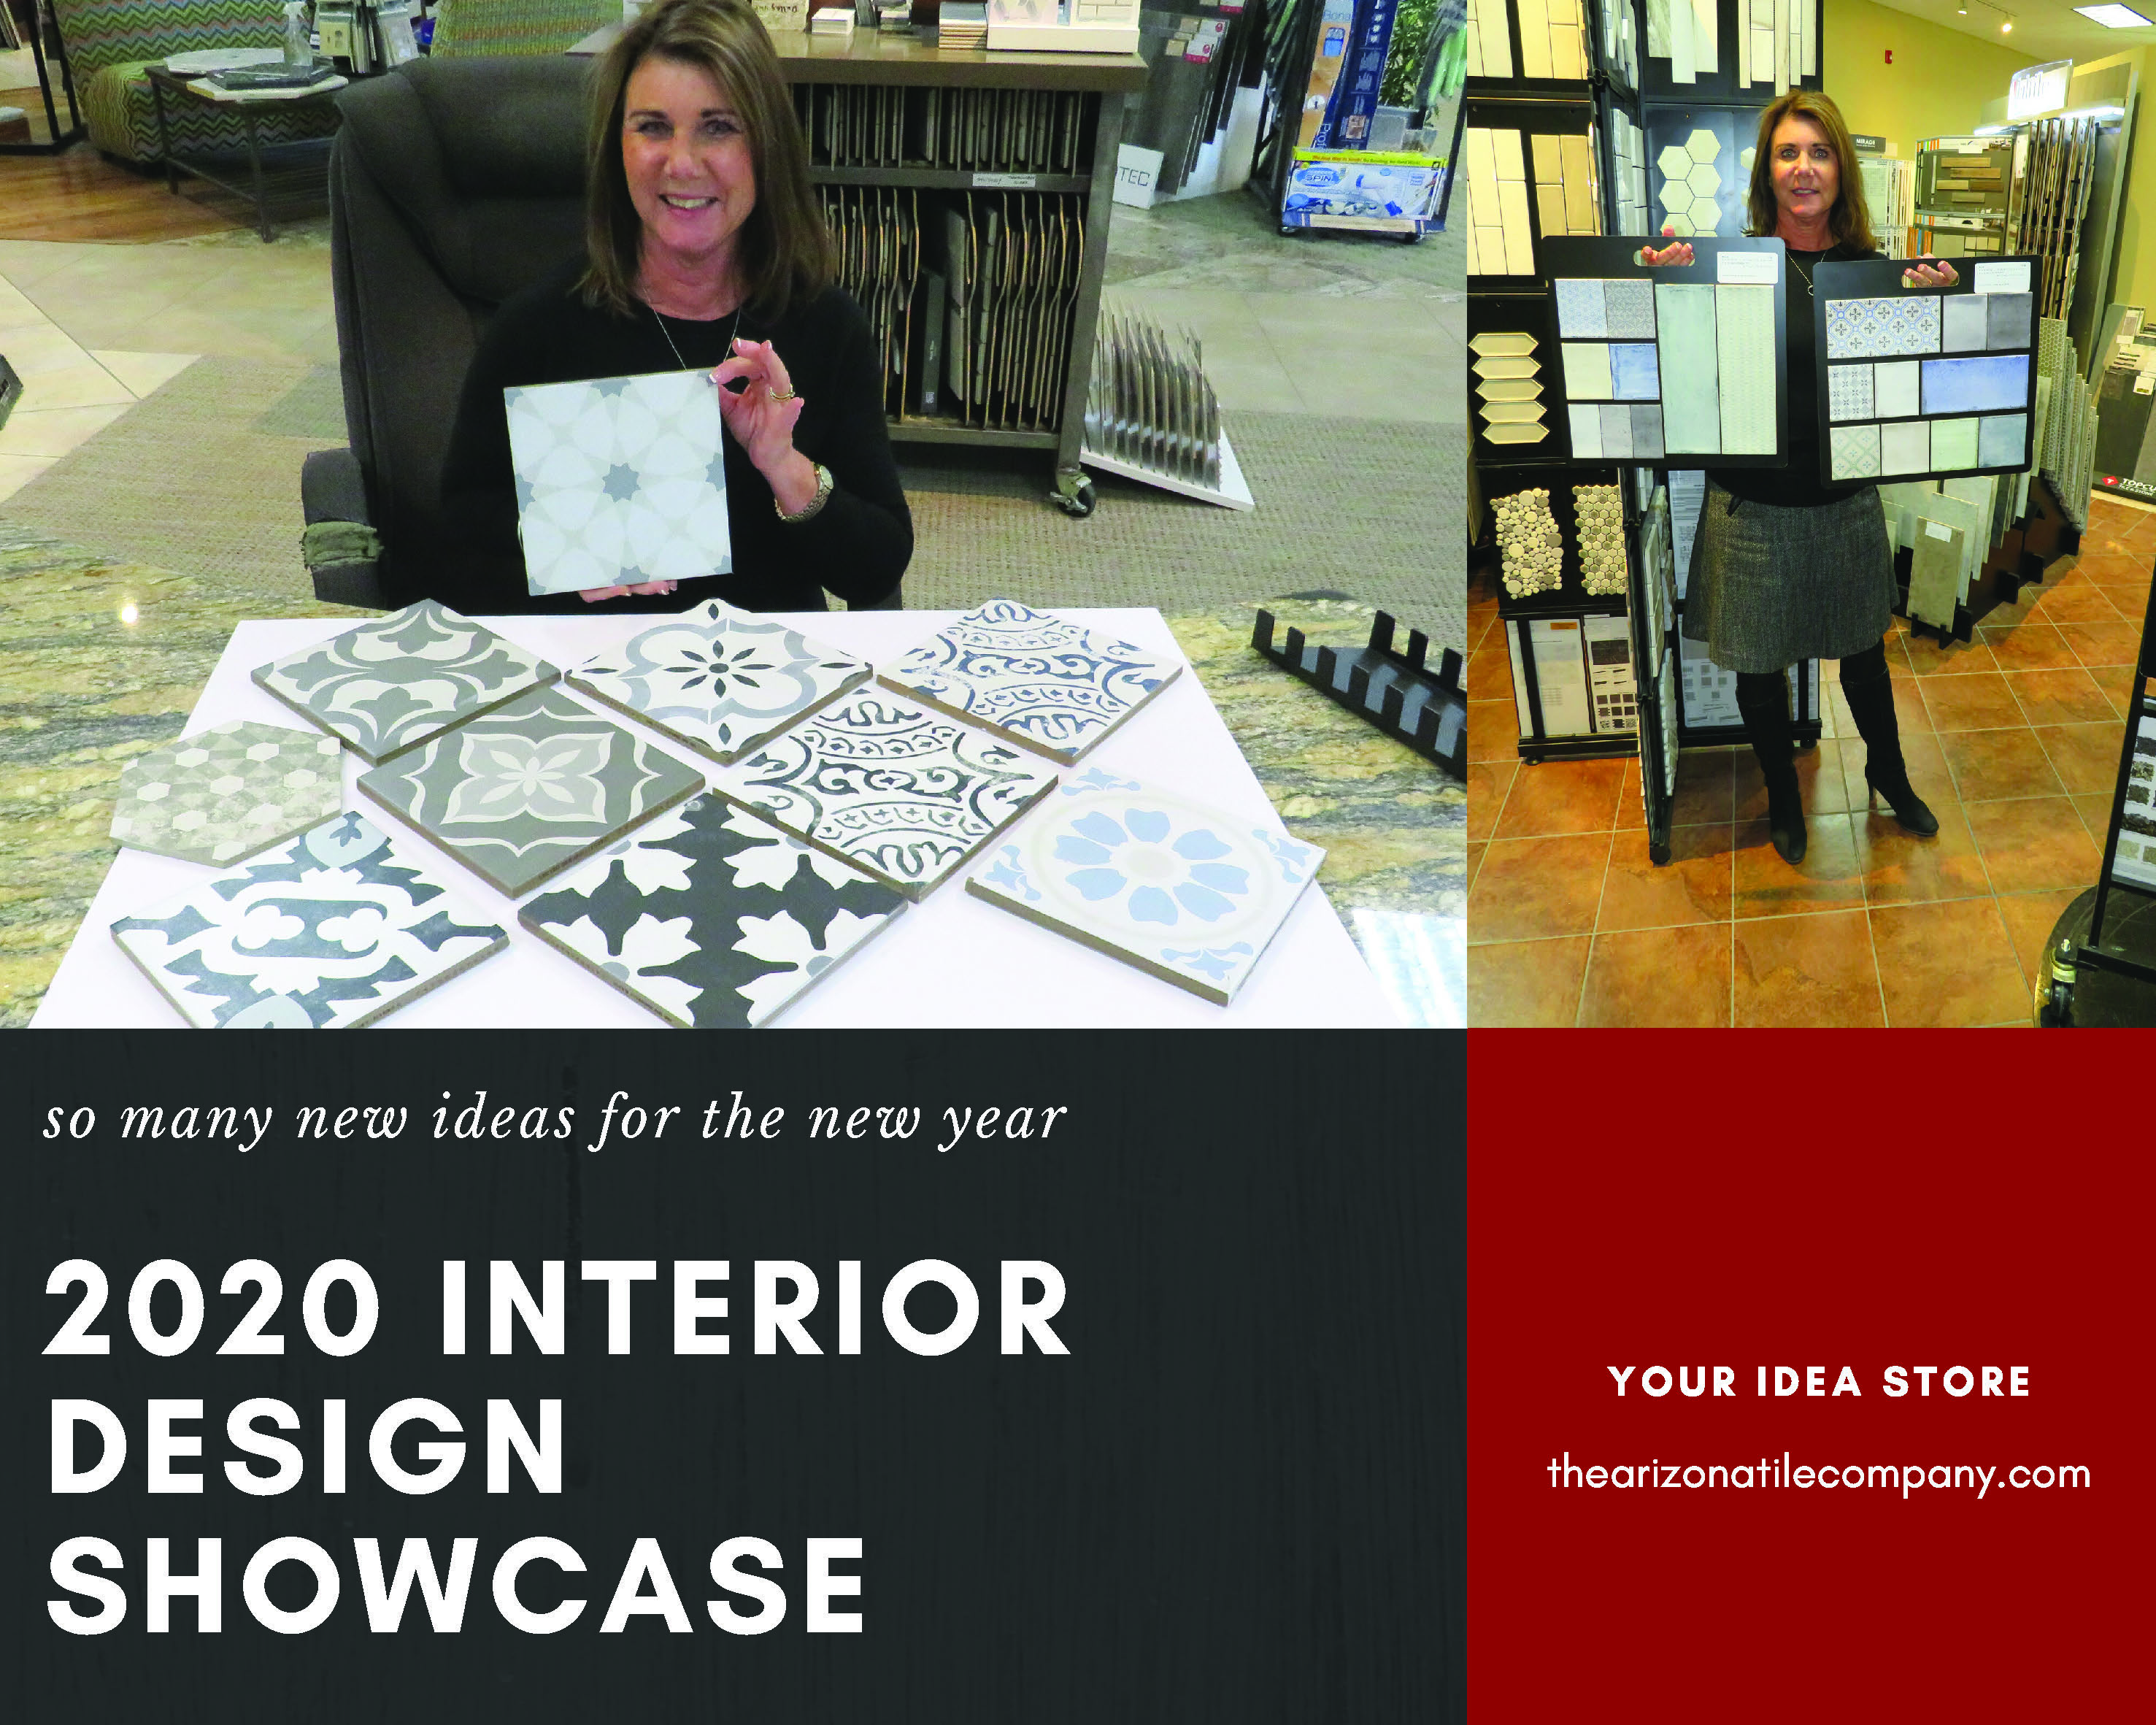 2020 Interior Design Showcase